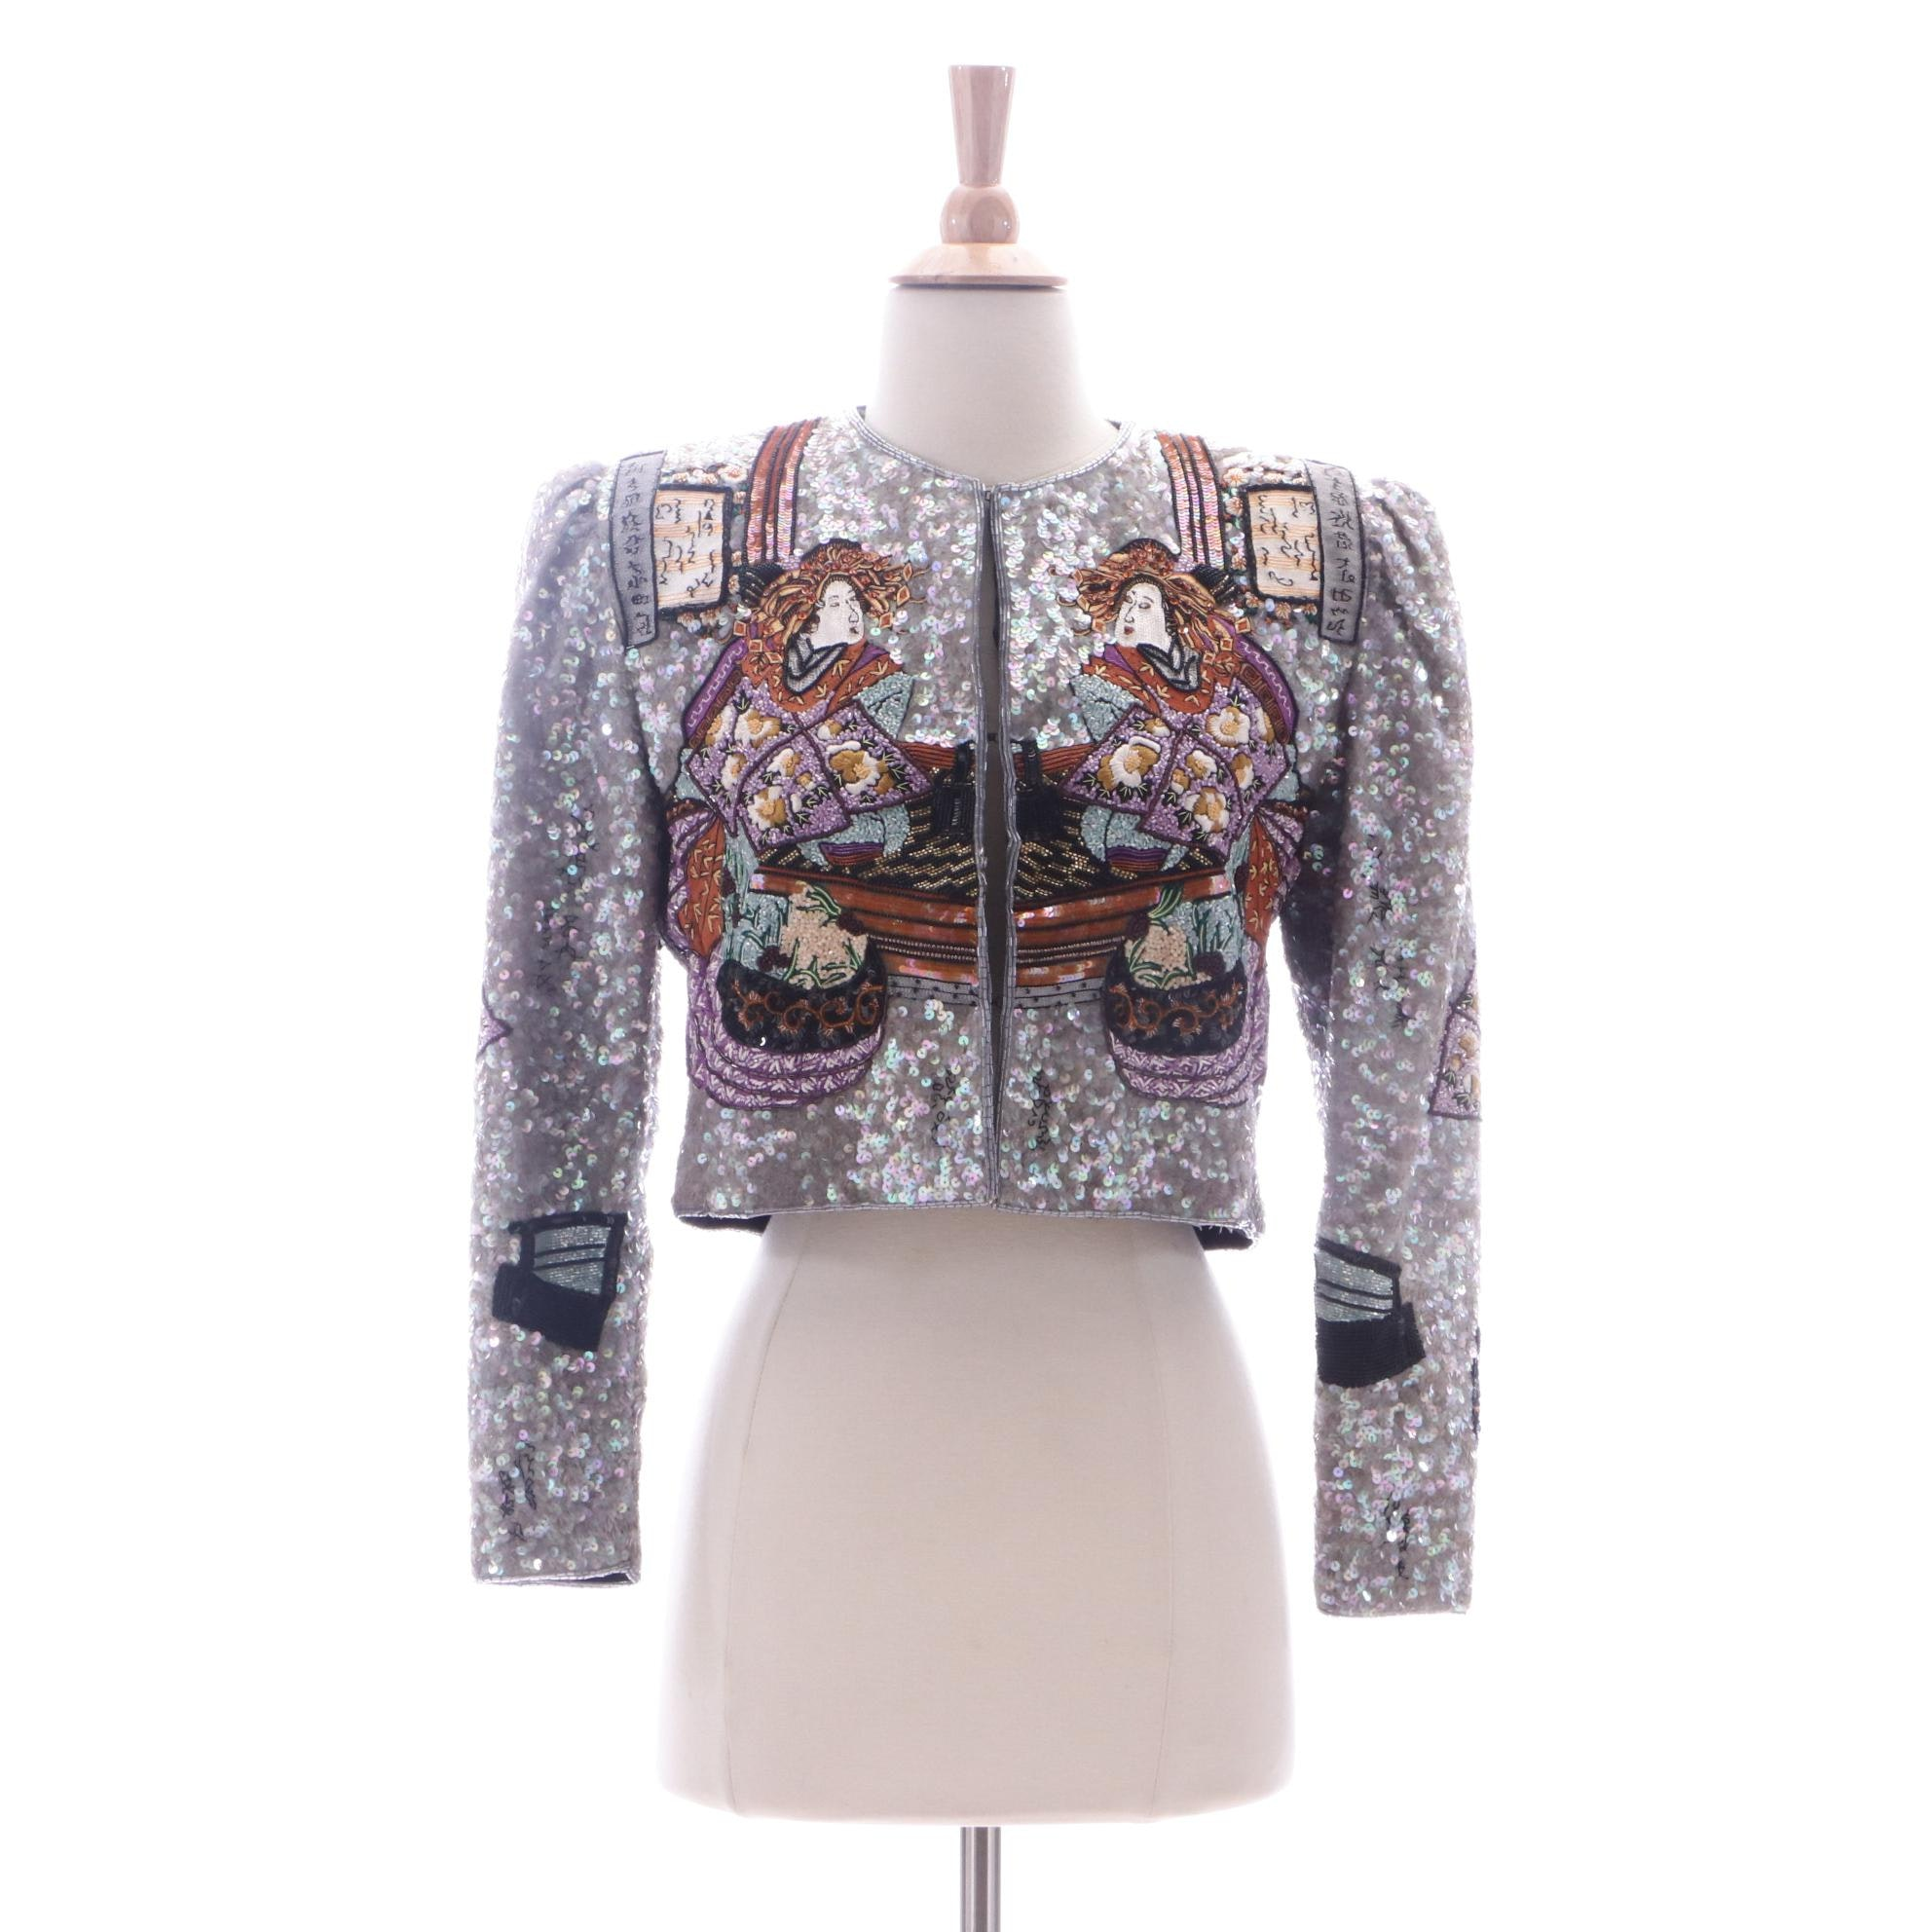 Rare 1992 Jeanette Kastenburg Limited Edition Embellished Jacket